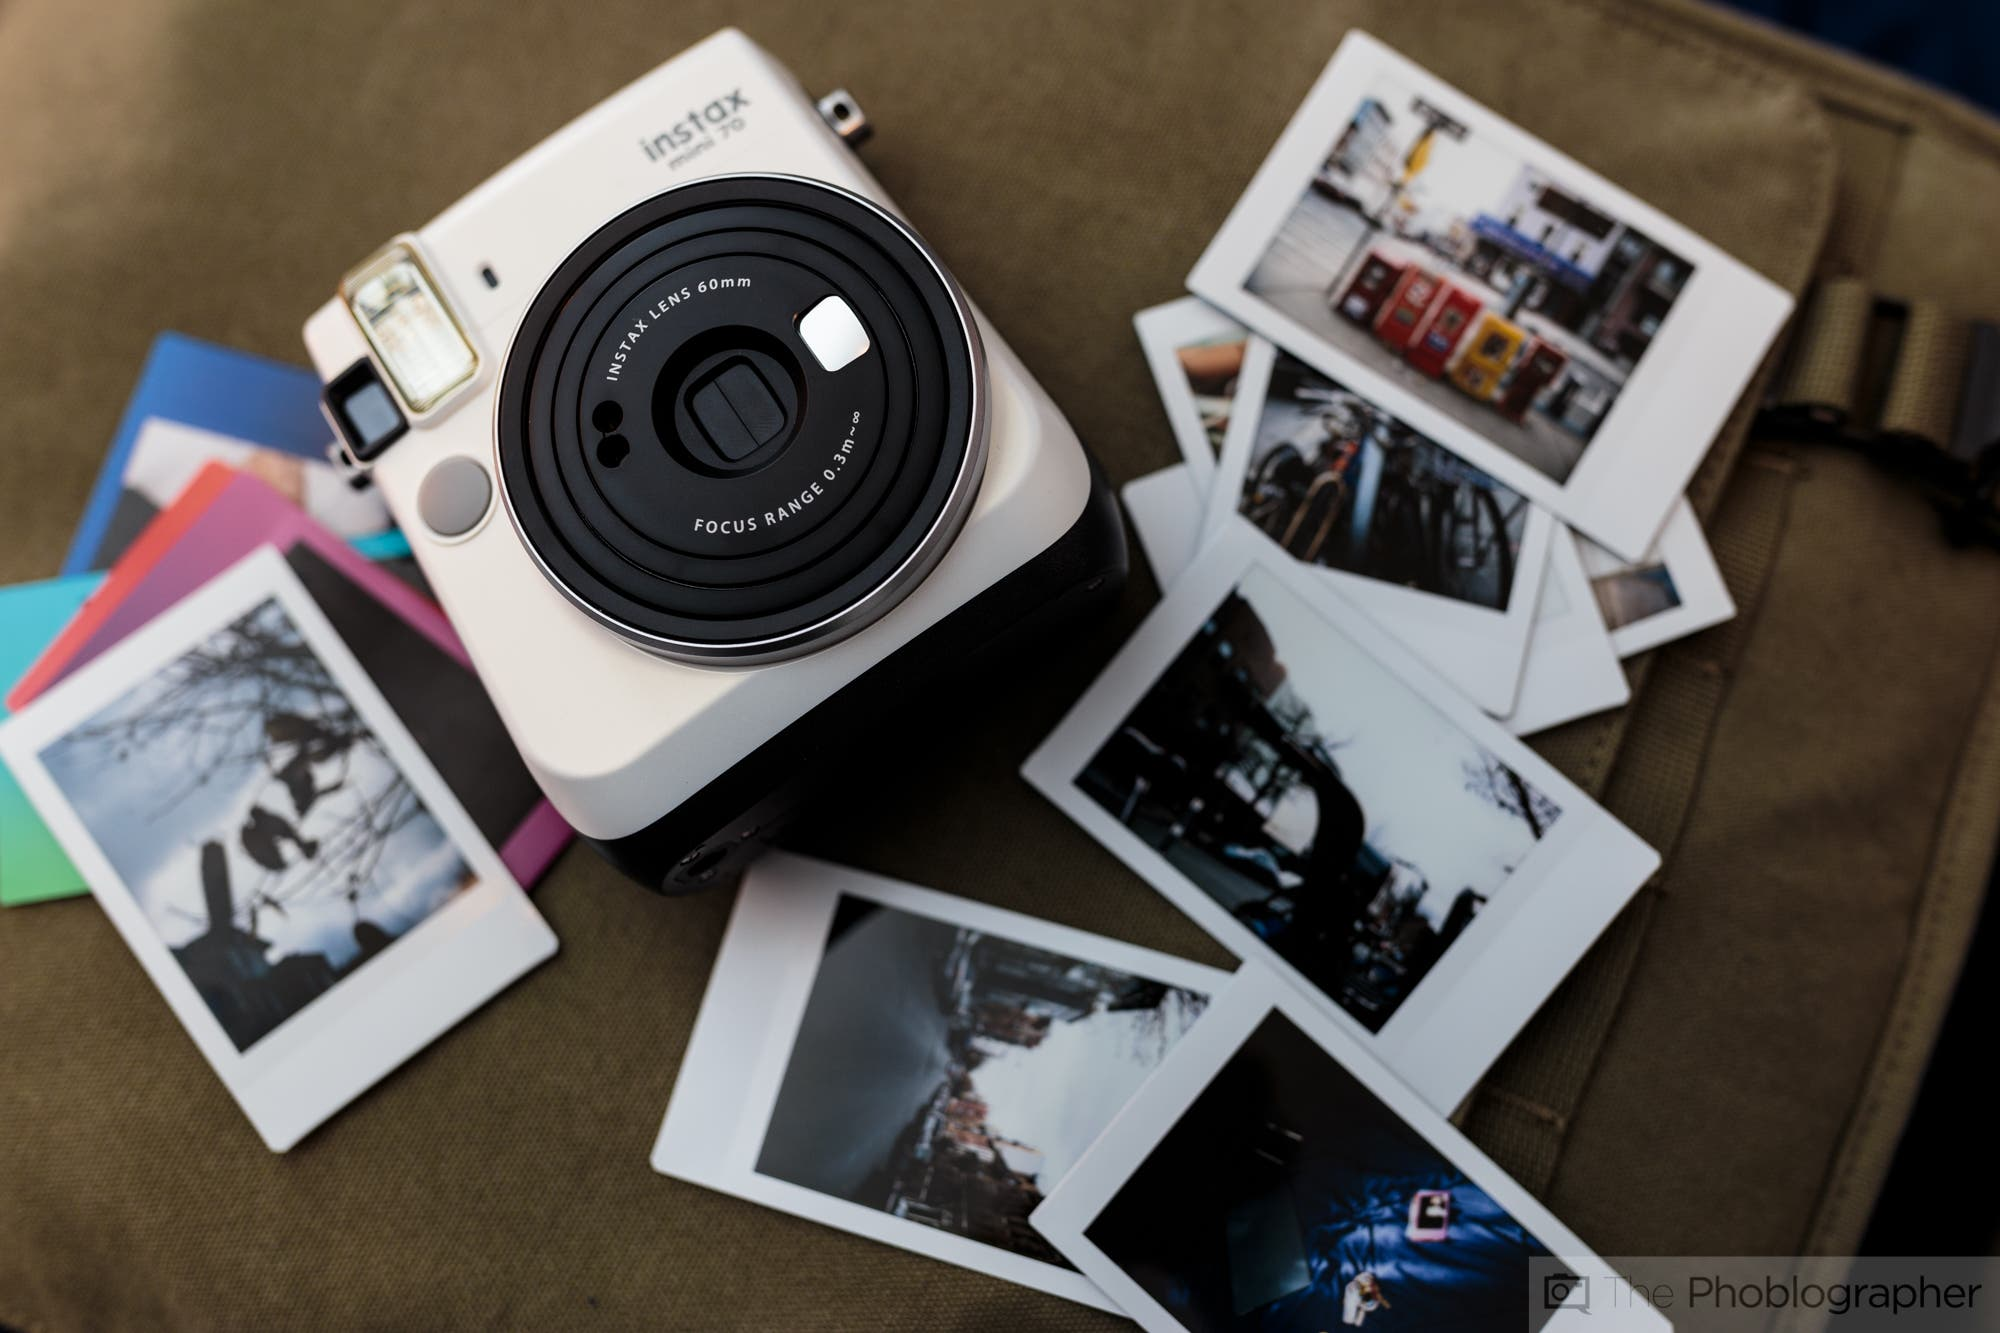 Chris Gampat The Phoblographer Fujifilm Instax Mini 70 Product Images 1 Of 10ISO